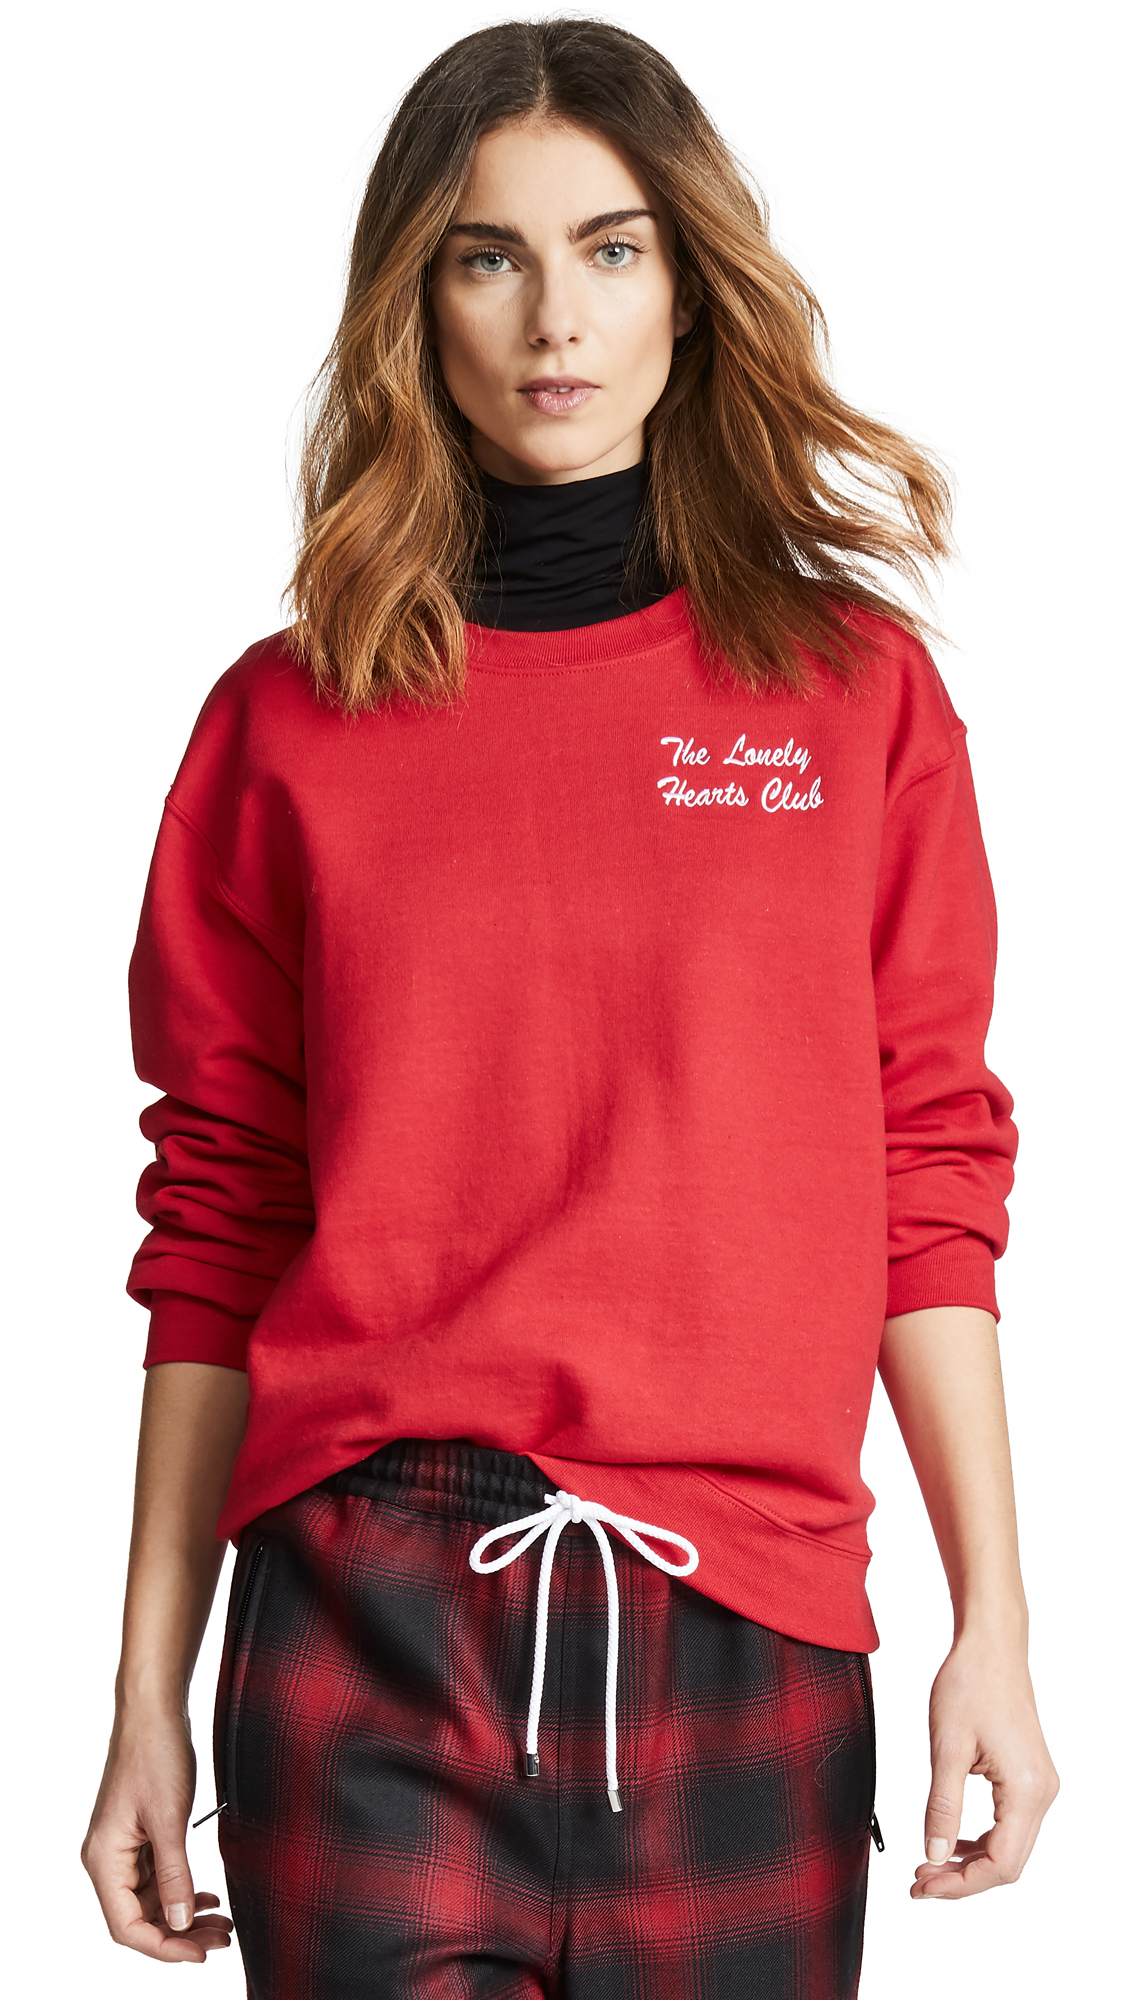 DOUBLE TROUBLE GANG Lonely Hearts Club Sweatshirt in Cherry Red